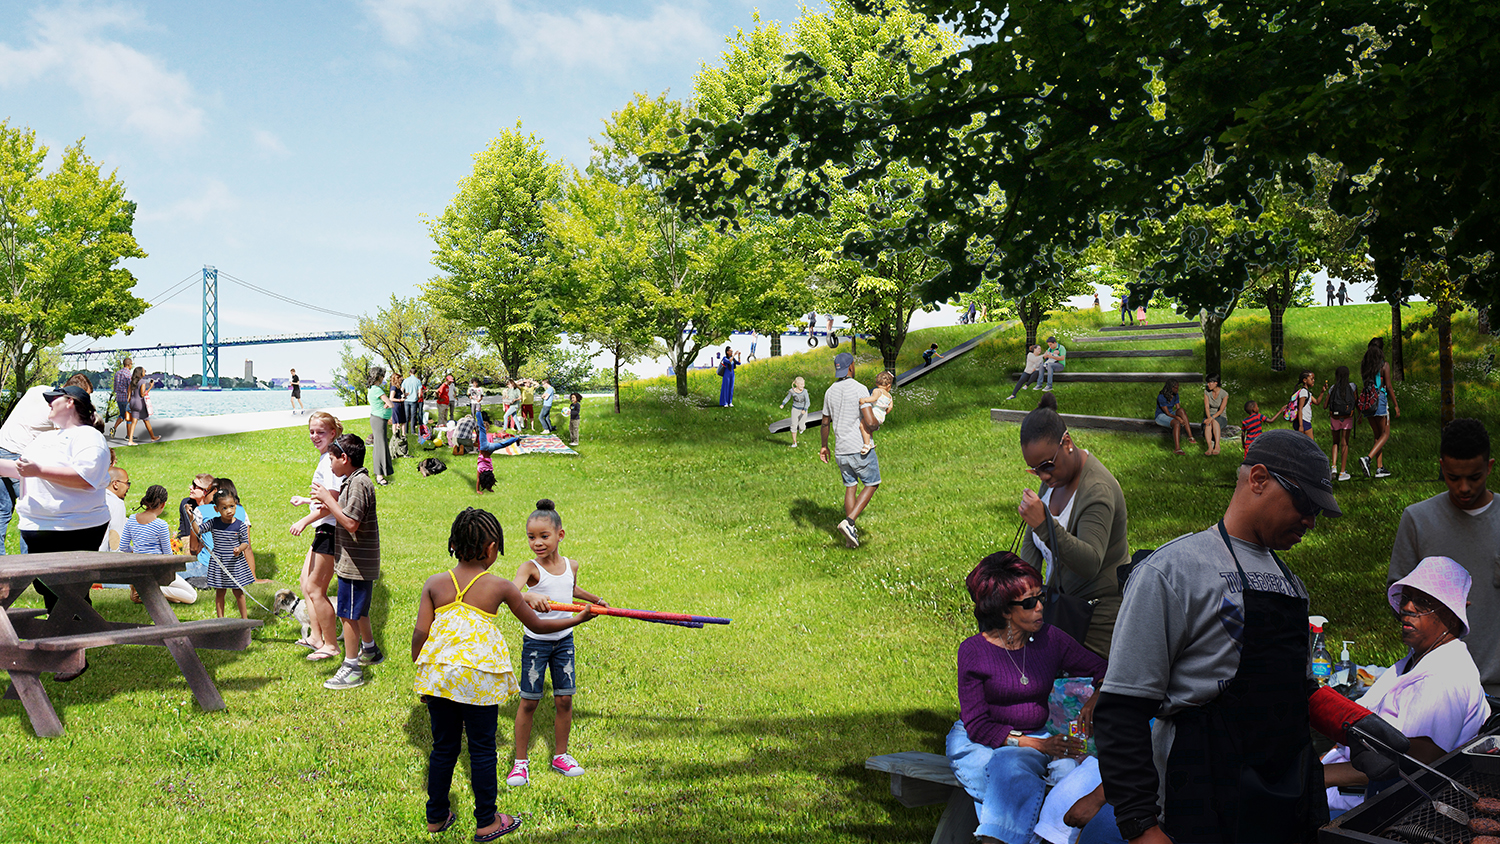 The Play and picnic terraces allow an unparalleled view of the Detroit River and Ambassador Bridge - spaces for family gatherings, children's play, and leisurely strolls.